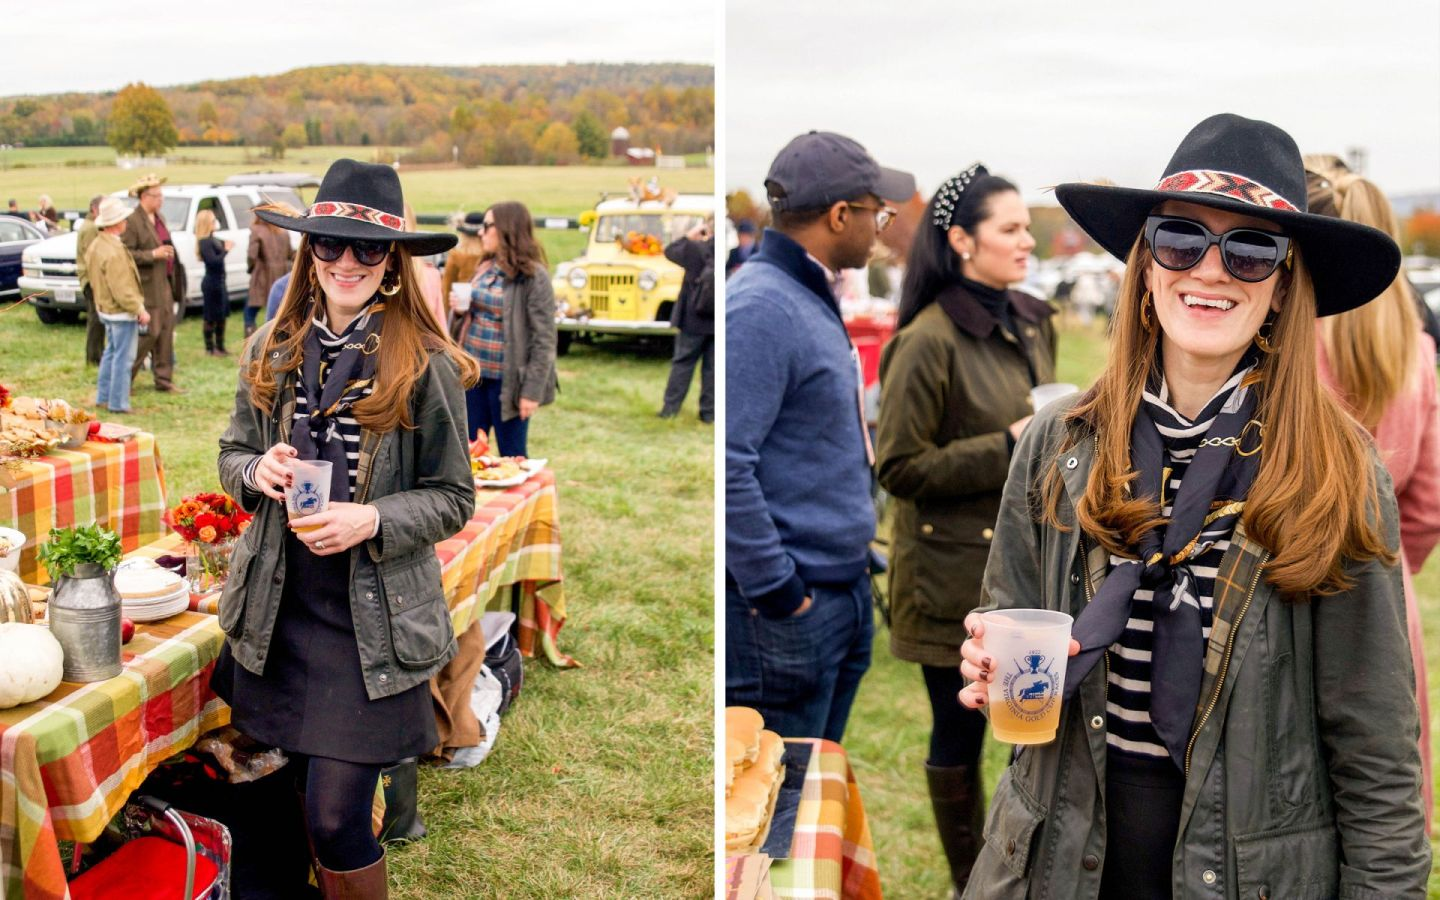 what to wear to fall gold cup - what do i wear to fall gold cup - what do i wear to a horse race in virginia - barbour at gold cup